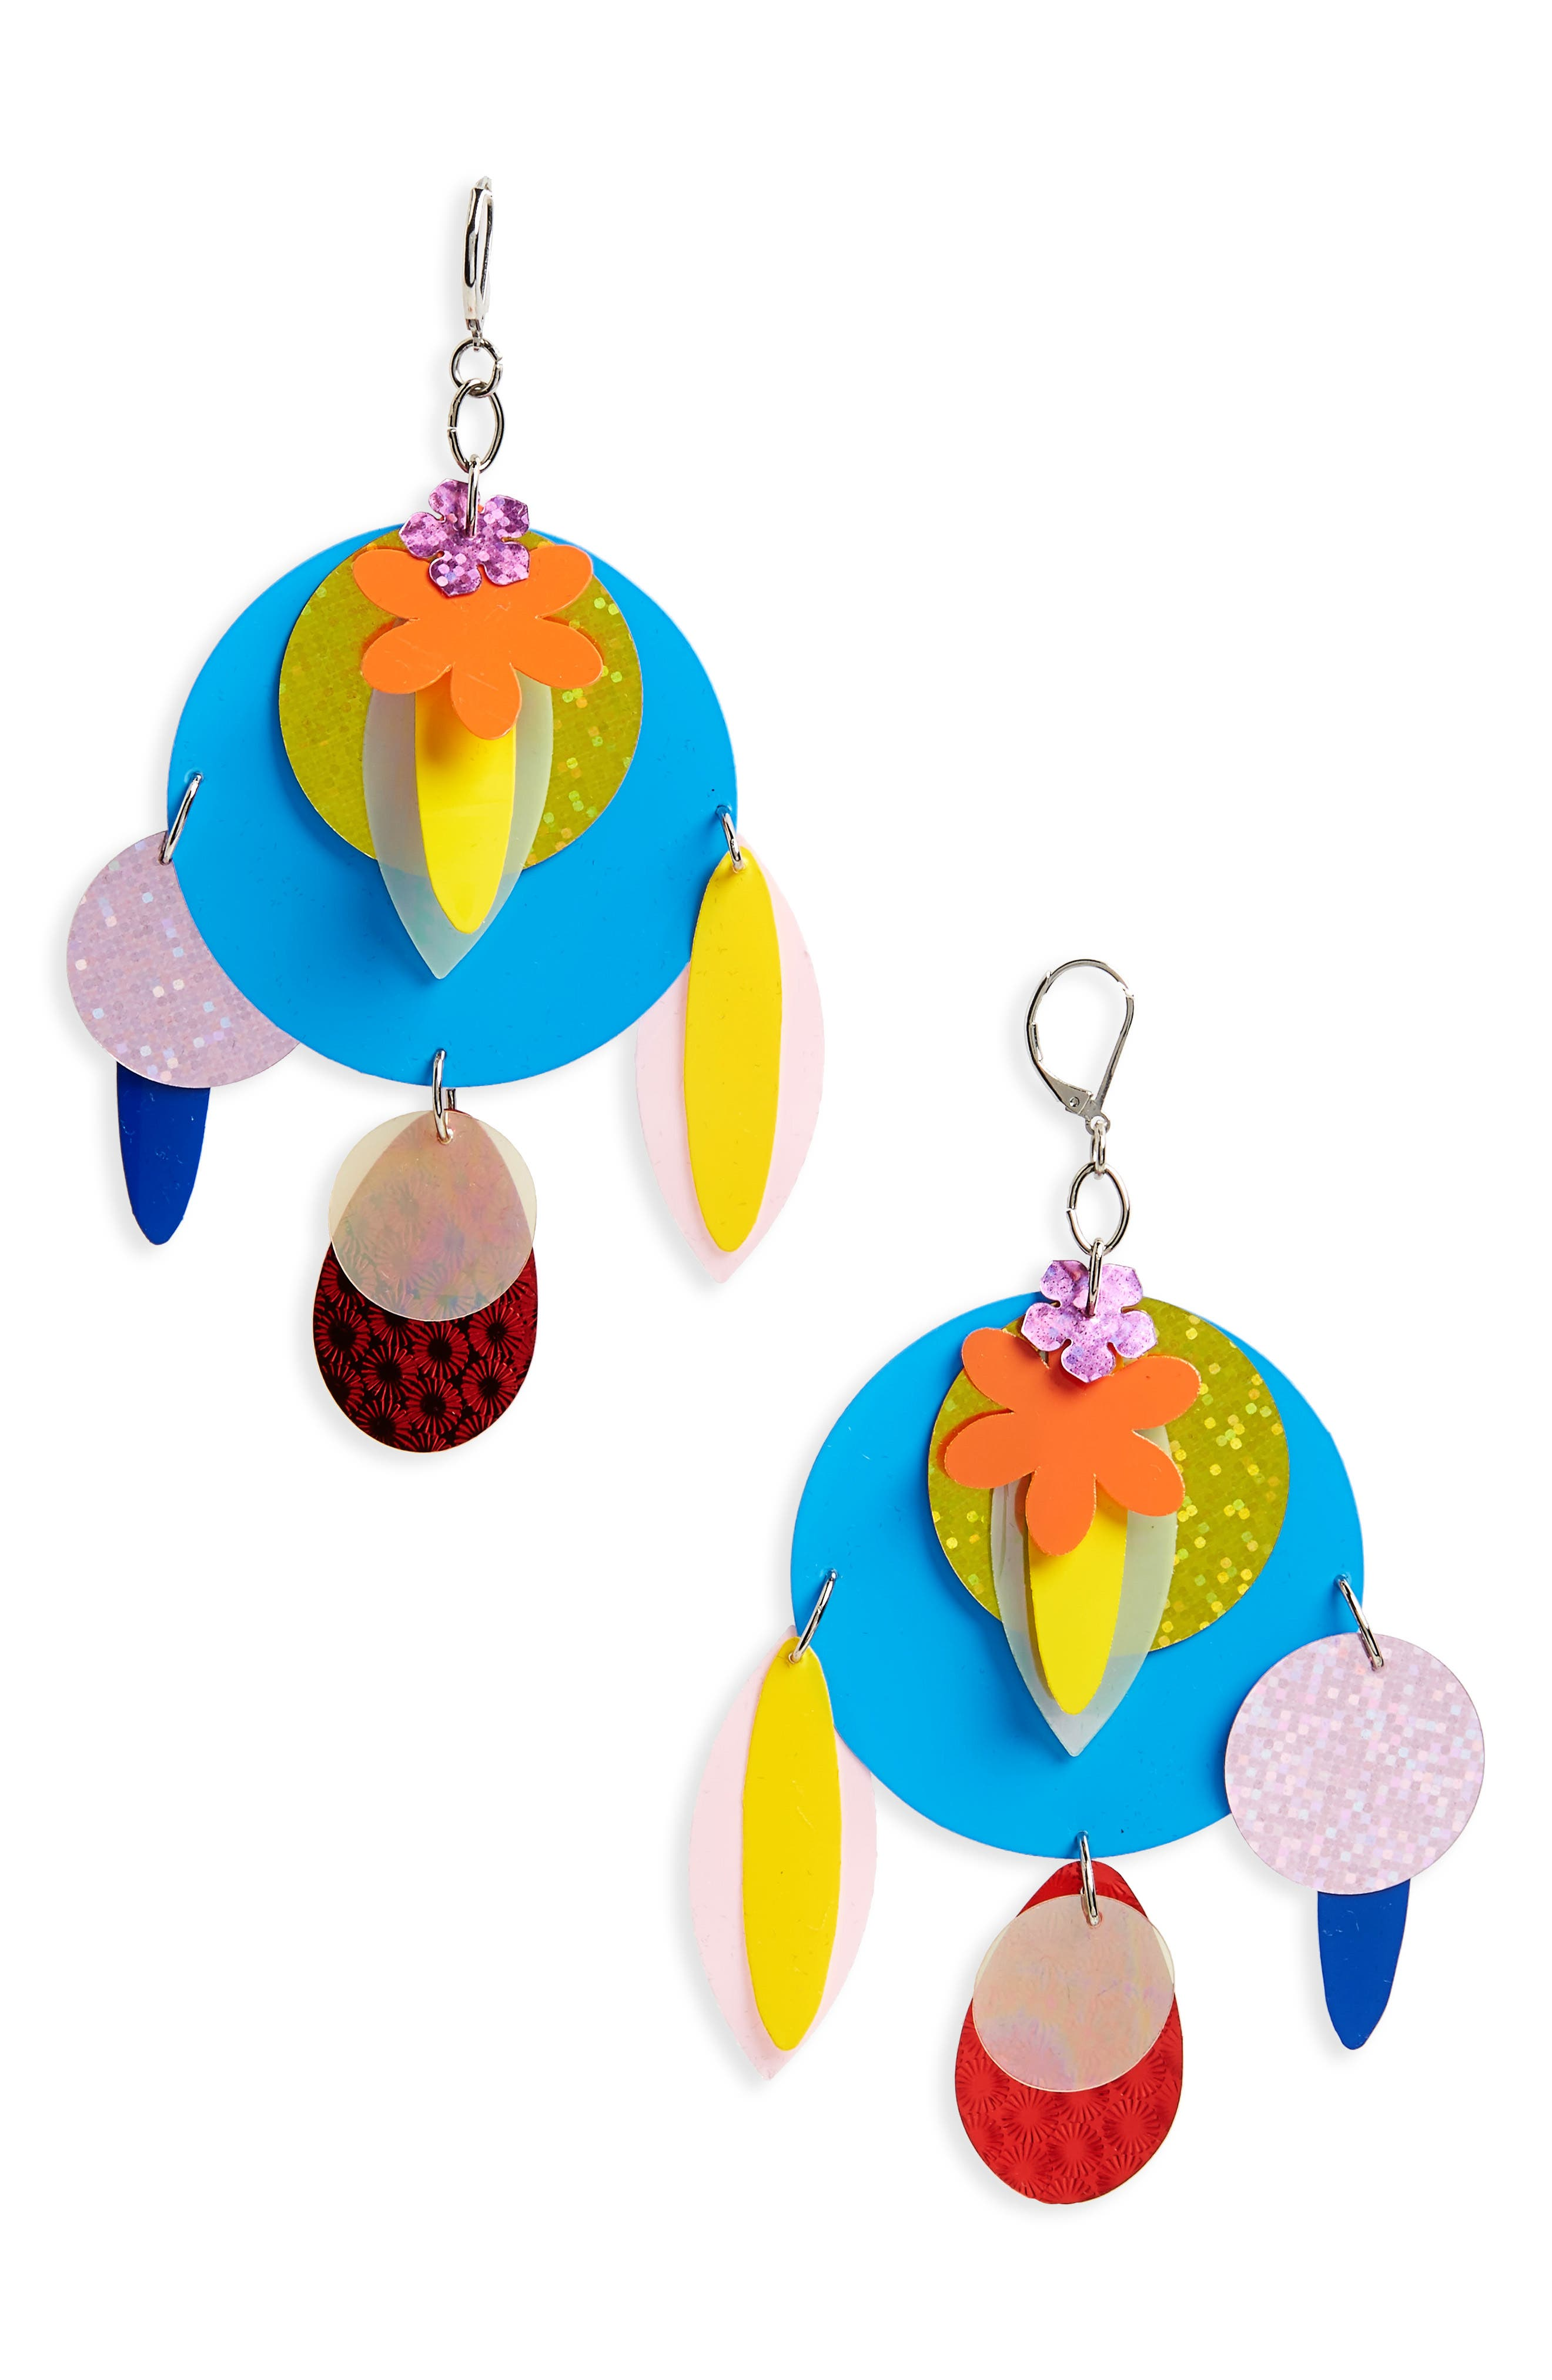 Sequin Statement Earrings,                             Main thumbnail 1, color,                             962